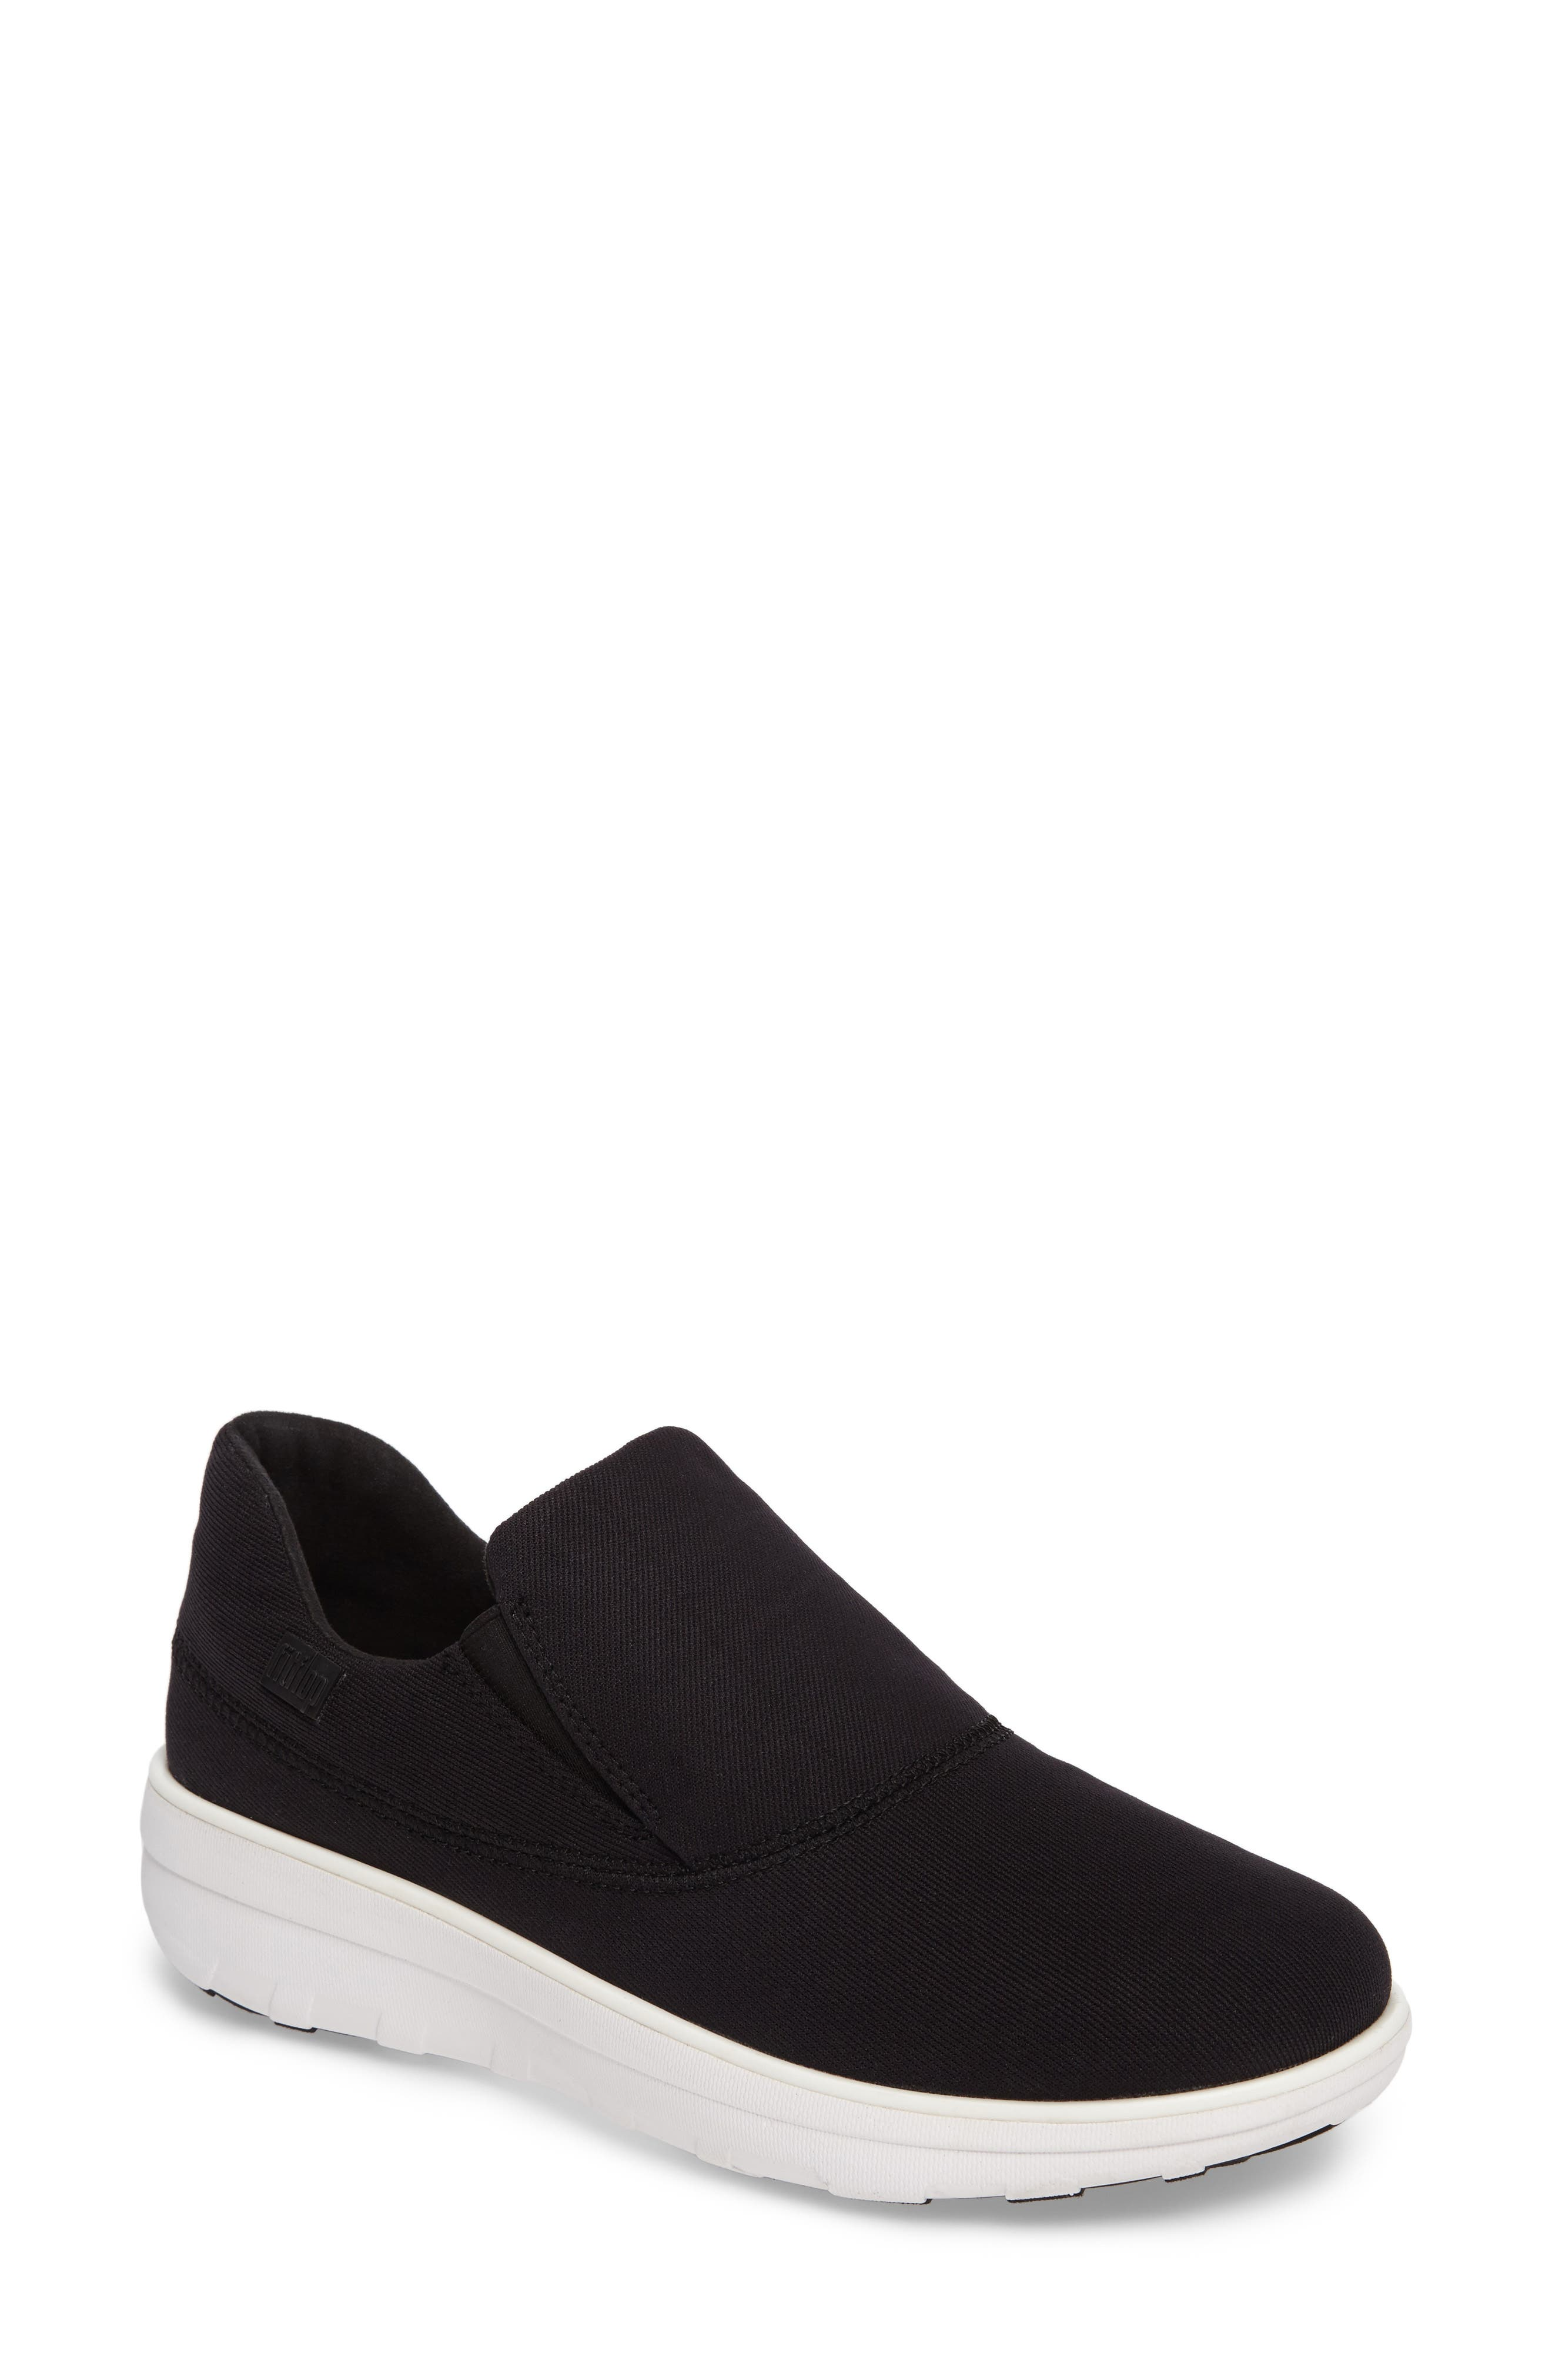 FitFlop Loaff Platform Slip-On Sneaker (Women)